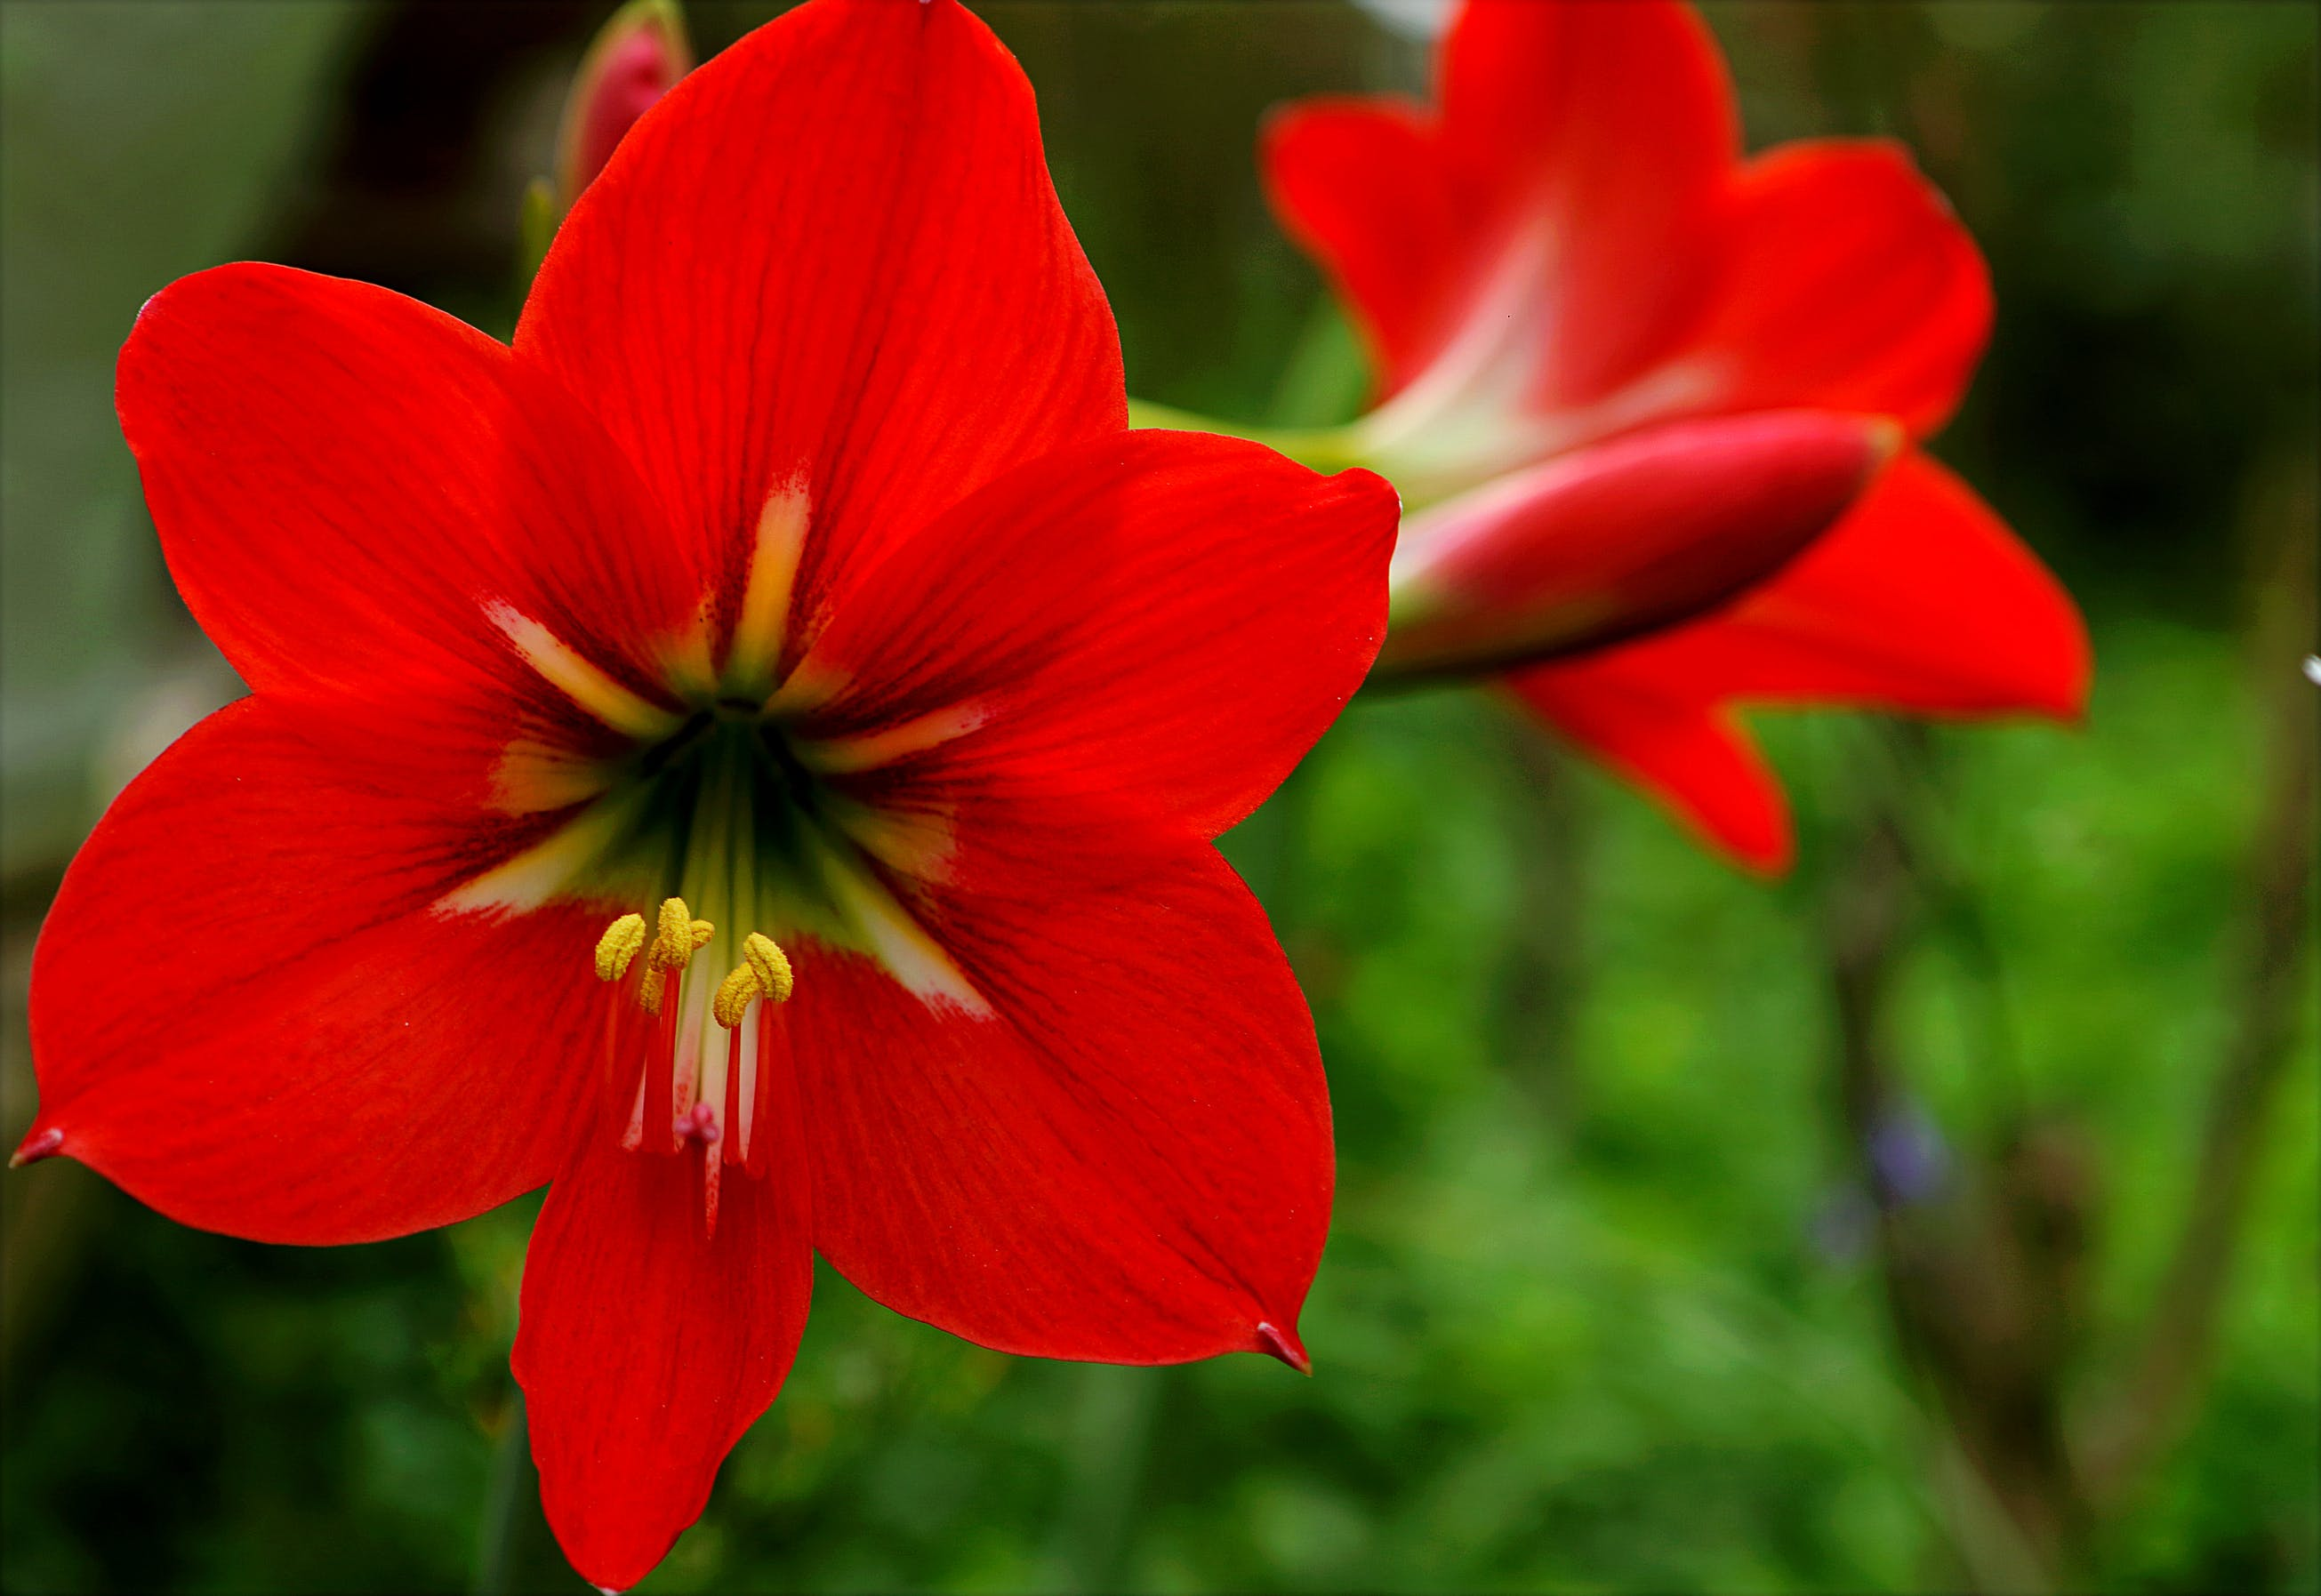 Free stock photo of nature, red, flowers, petals